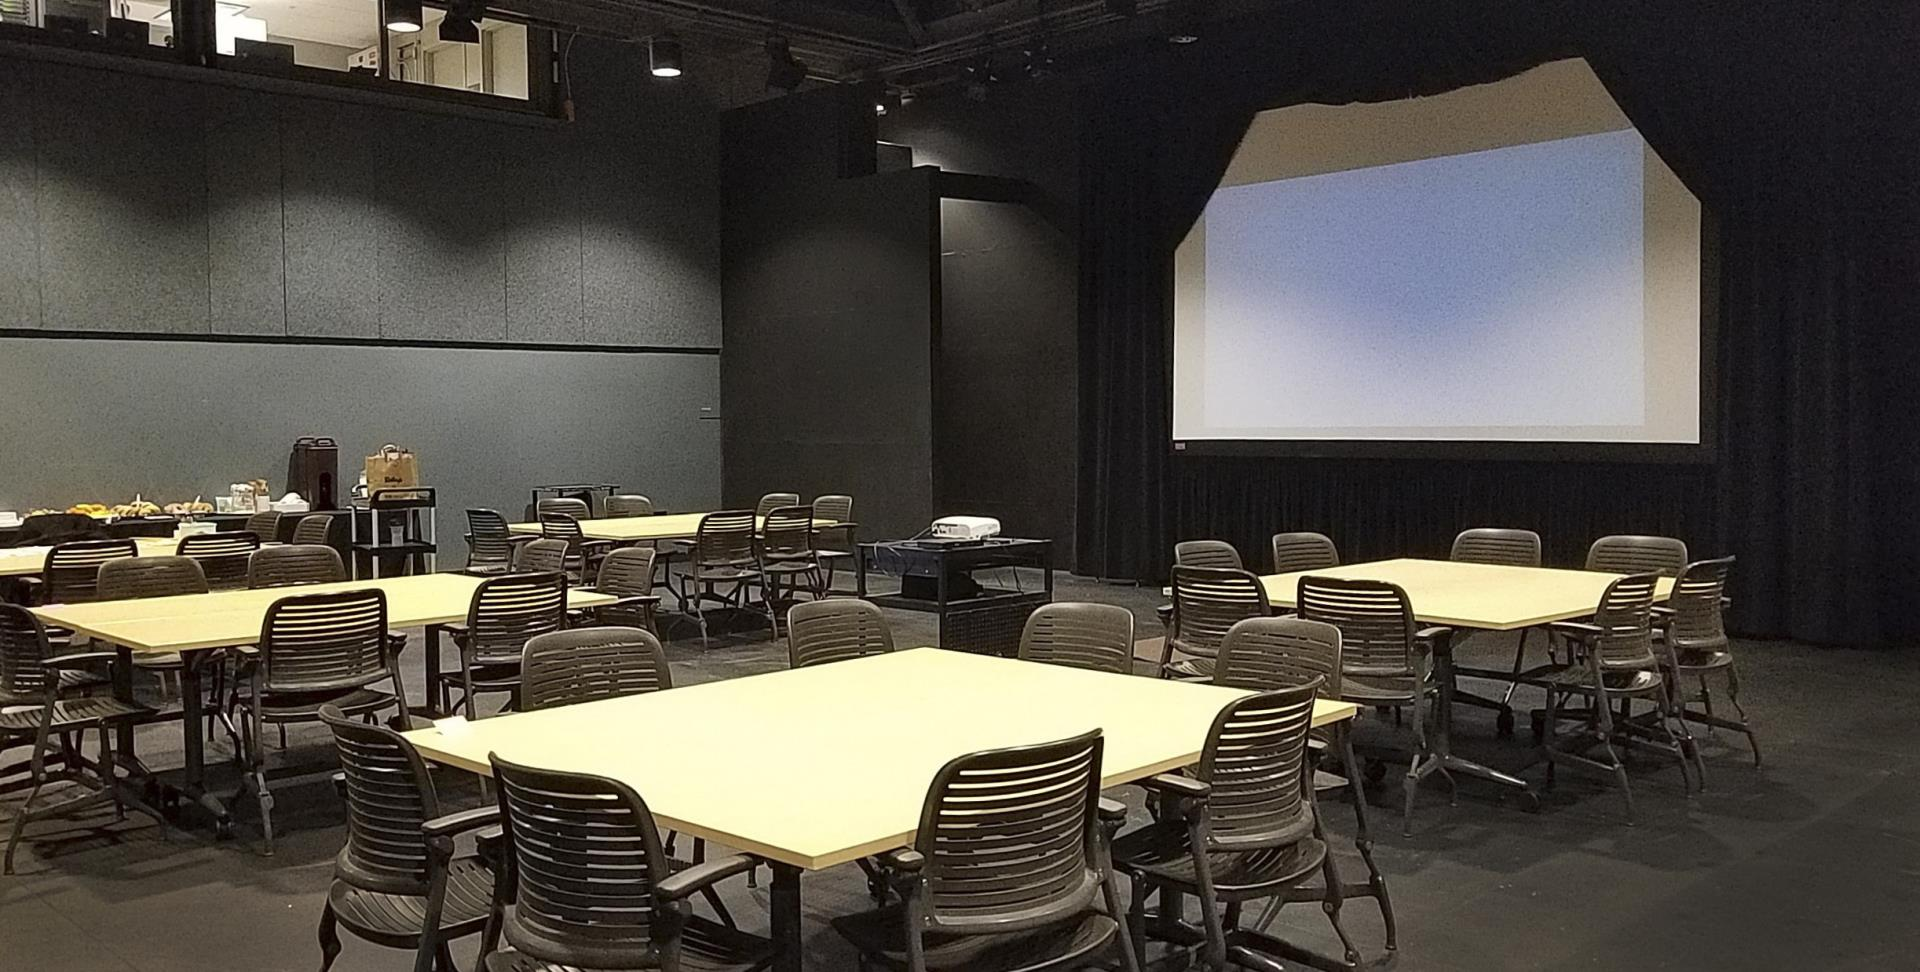 Workshop setup with tables and large screen